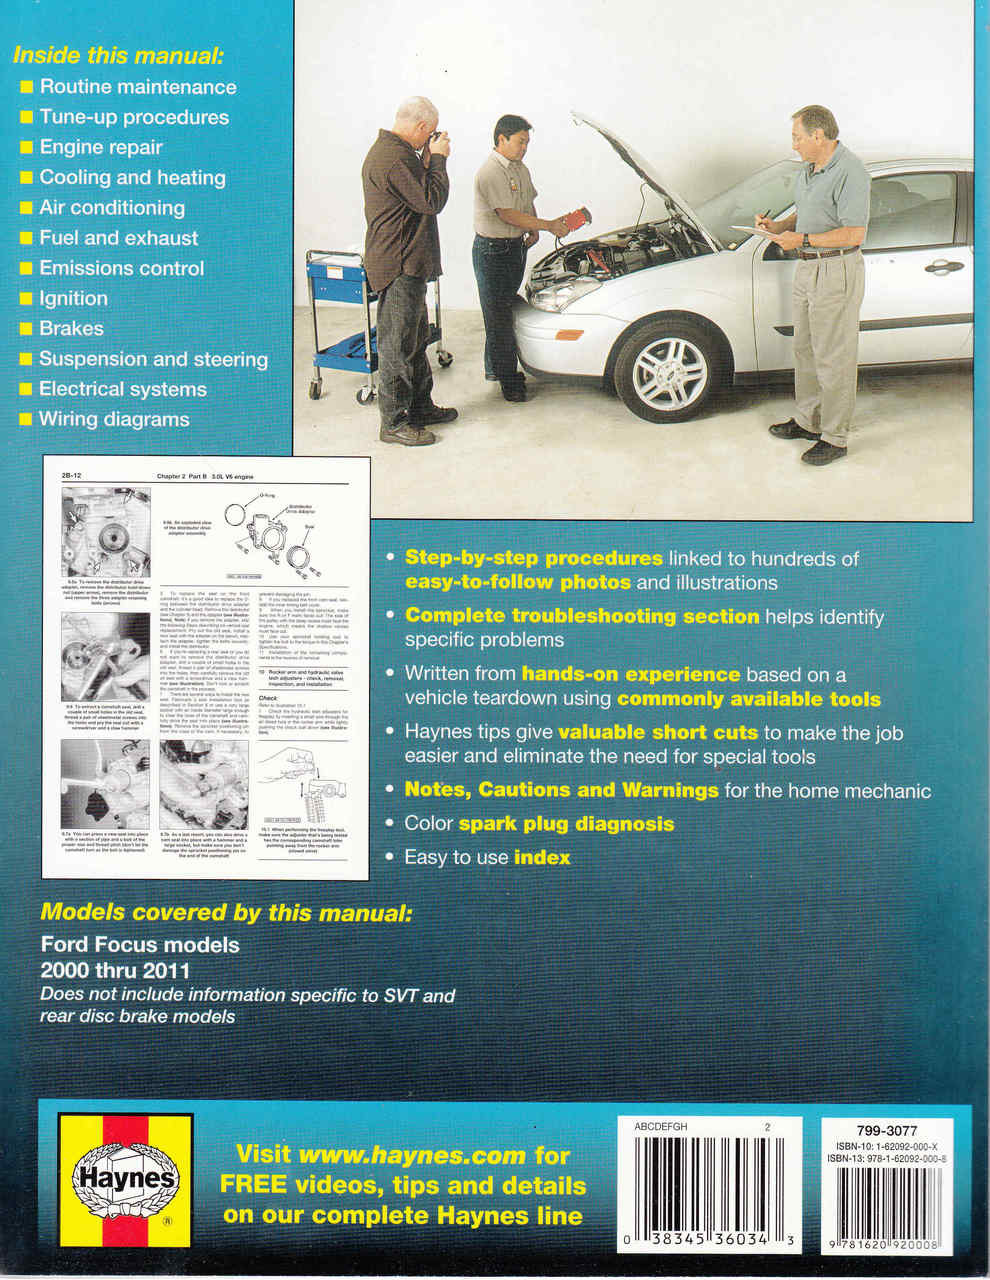 hight resolution of  ford focus 2000 2011 petrol workshop manual 9781620920008